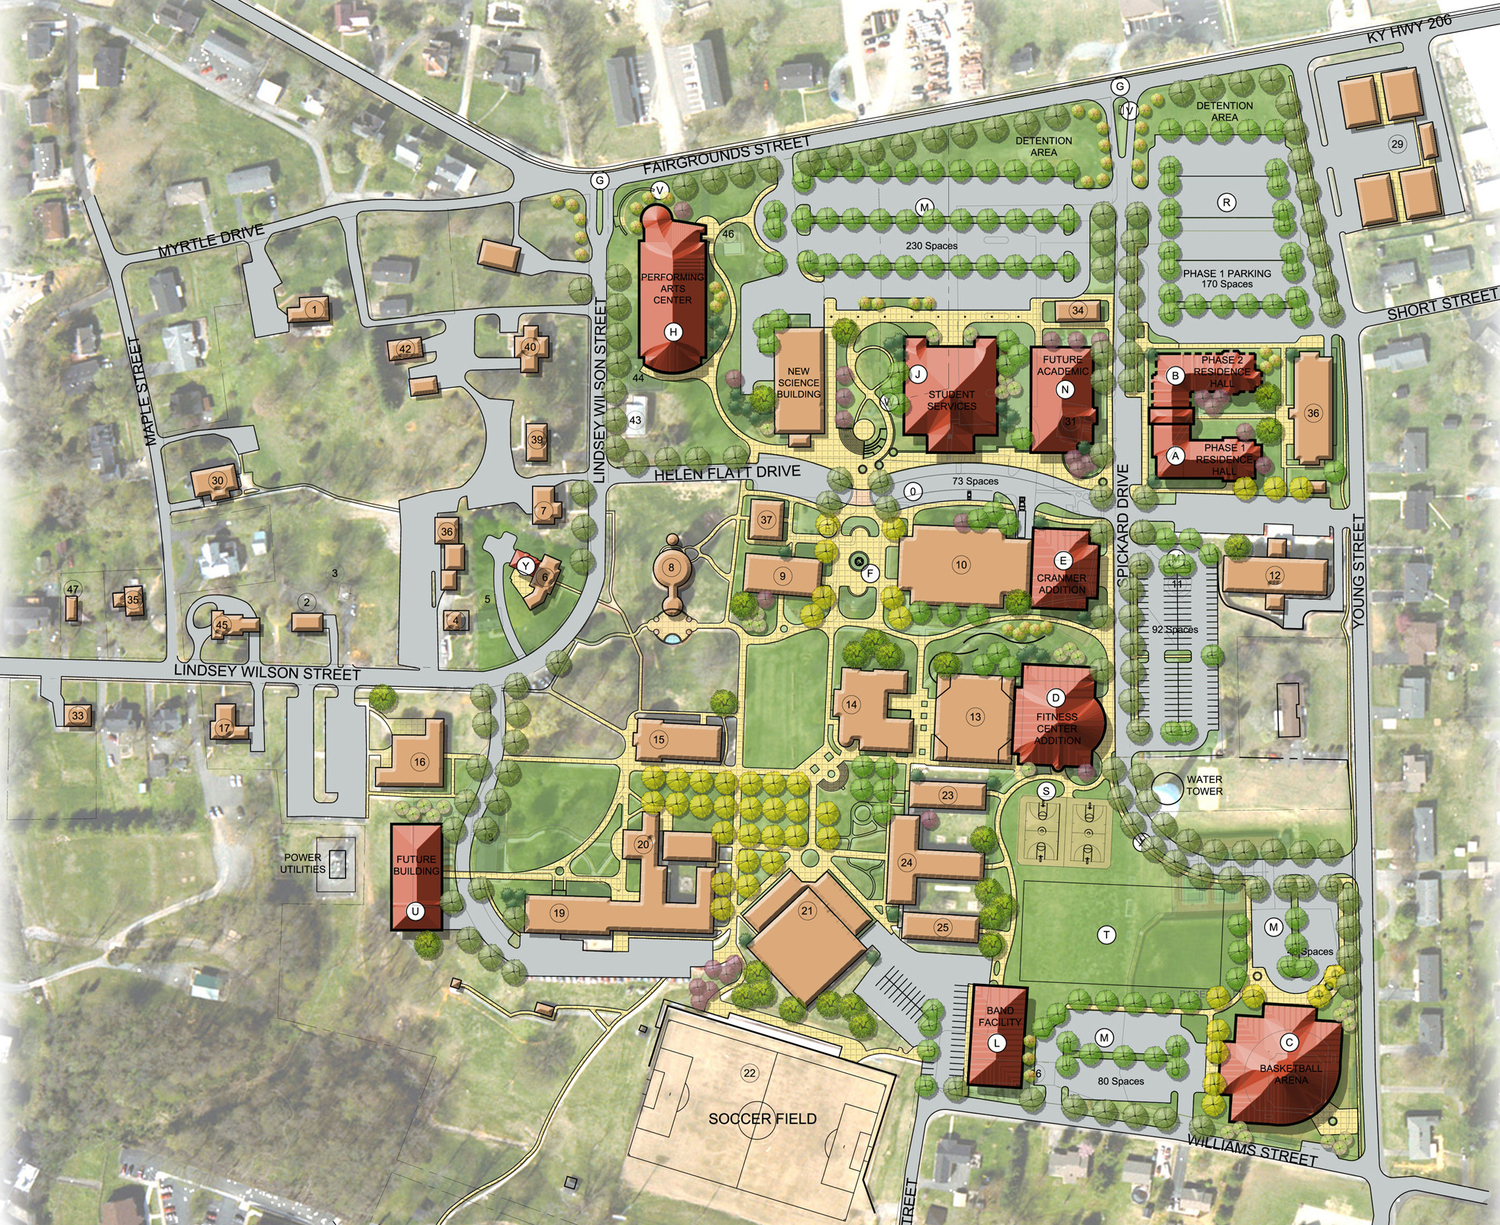 Campus Master Planning Element Design